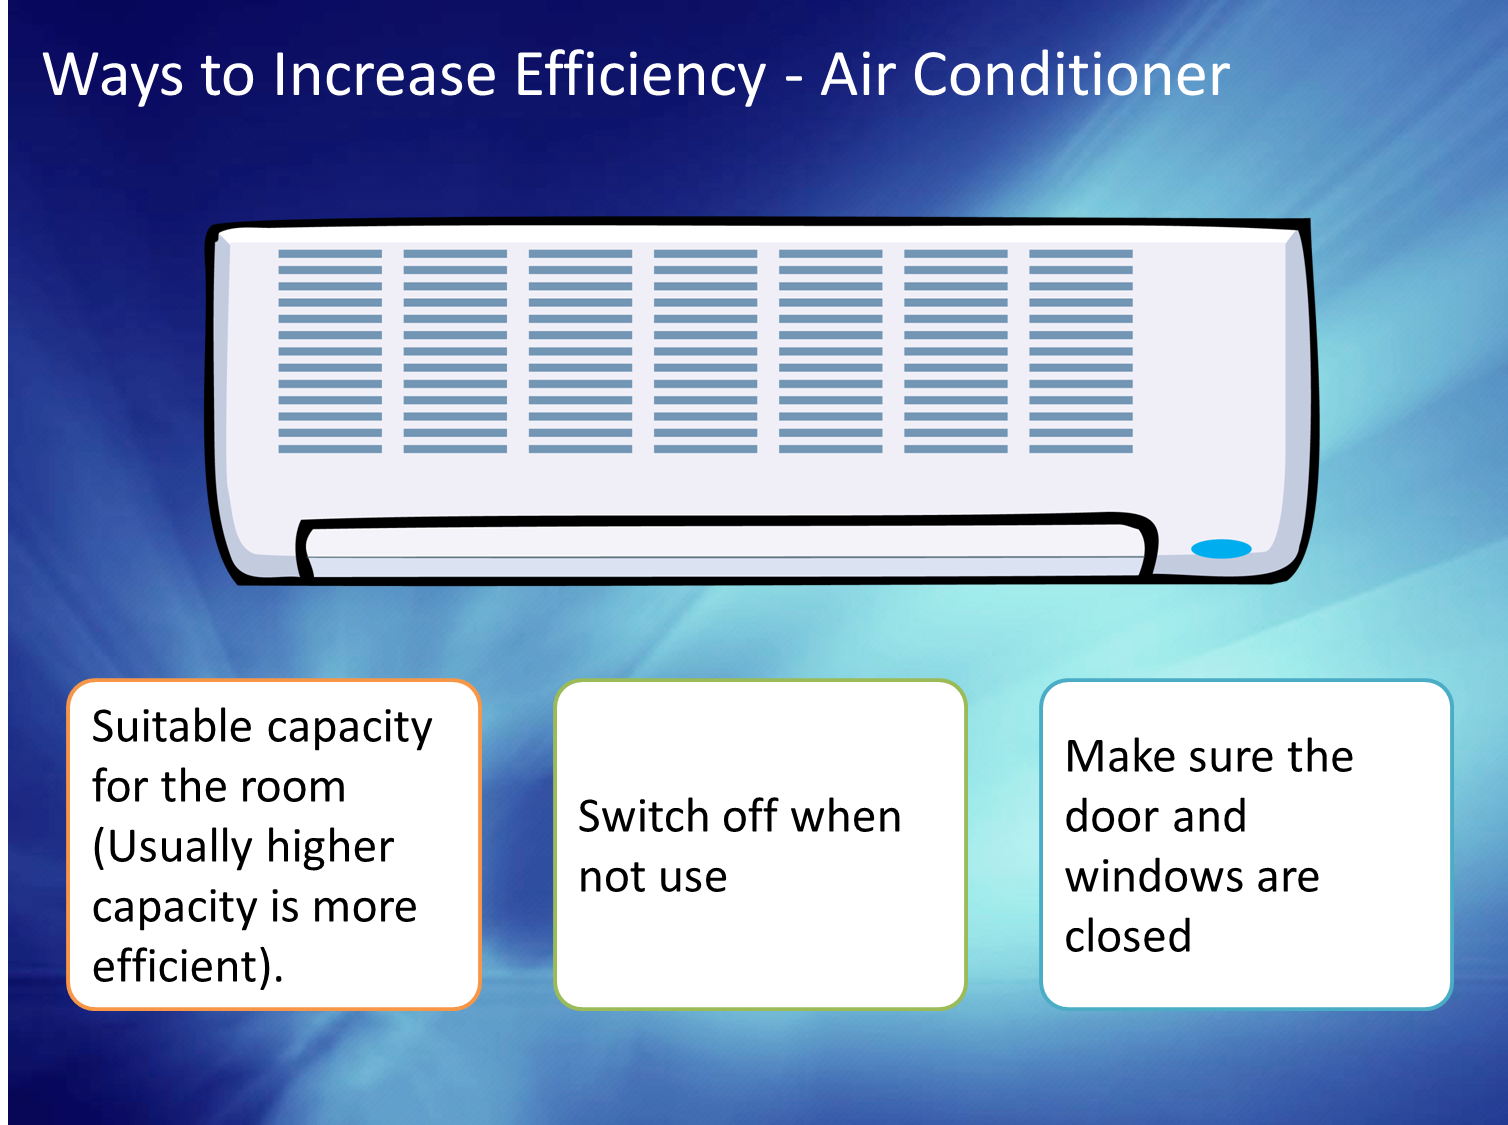 switch off the air conditioner when not in use buy the air conditioner  #17257B